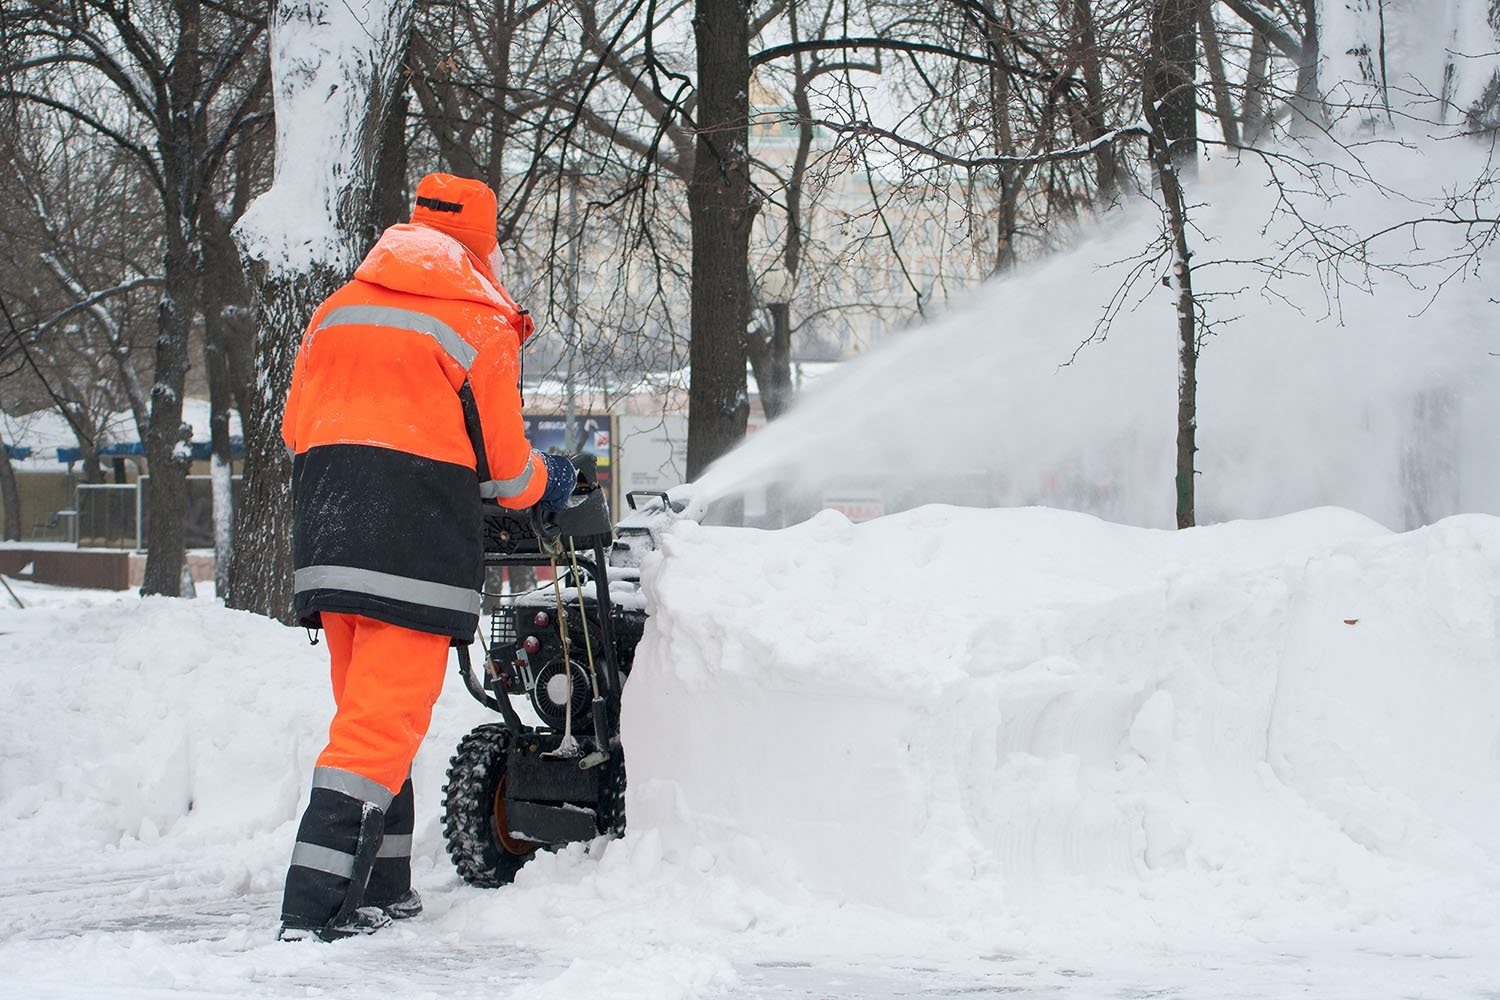 man-using-snowblower-for-snow-removal